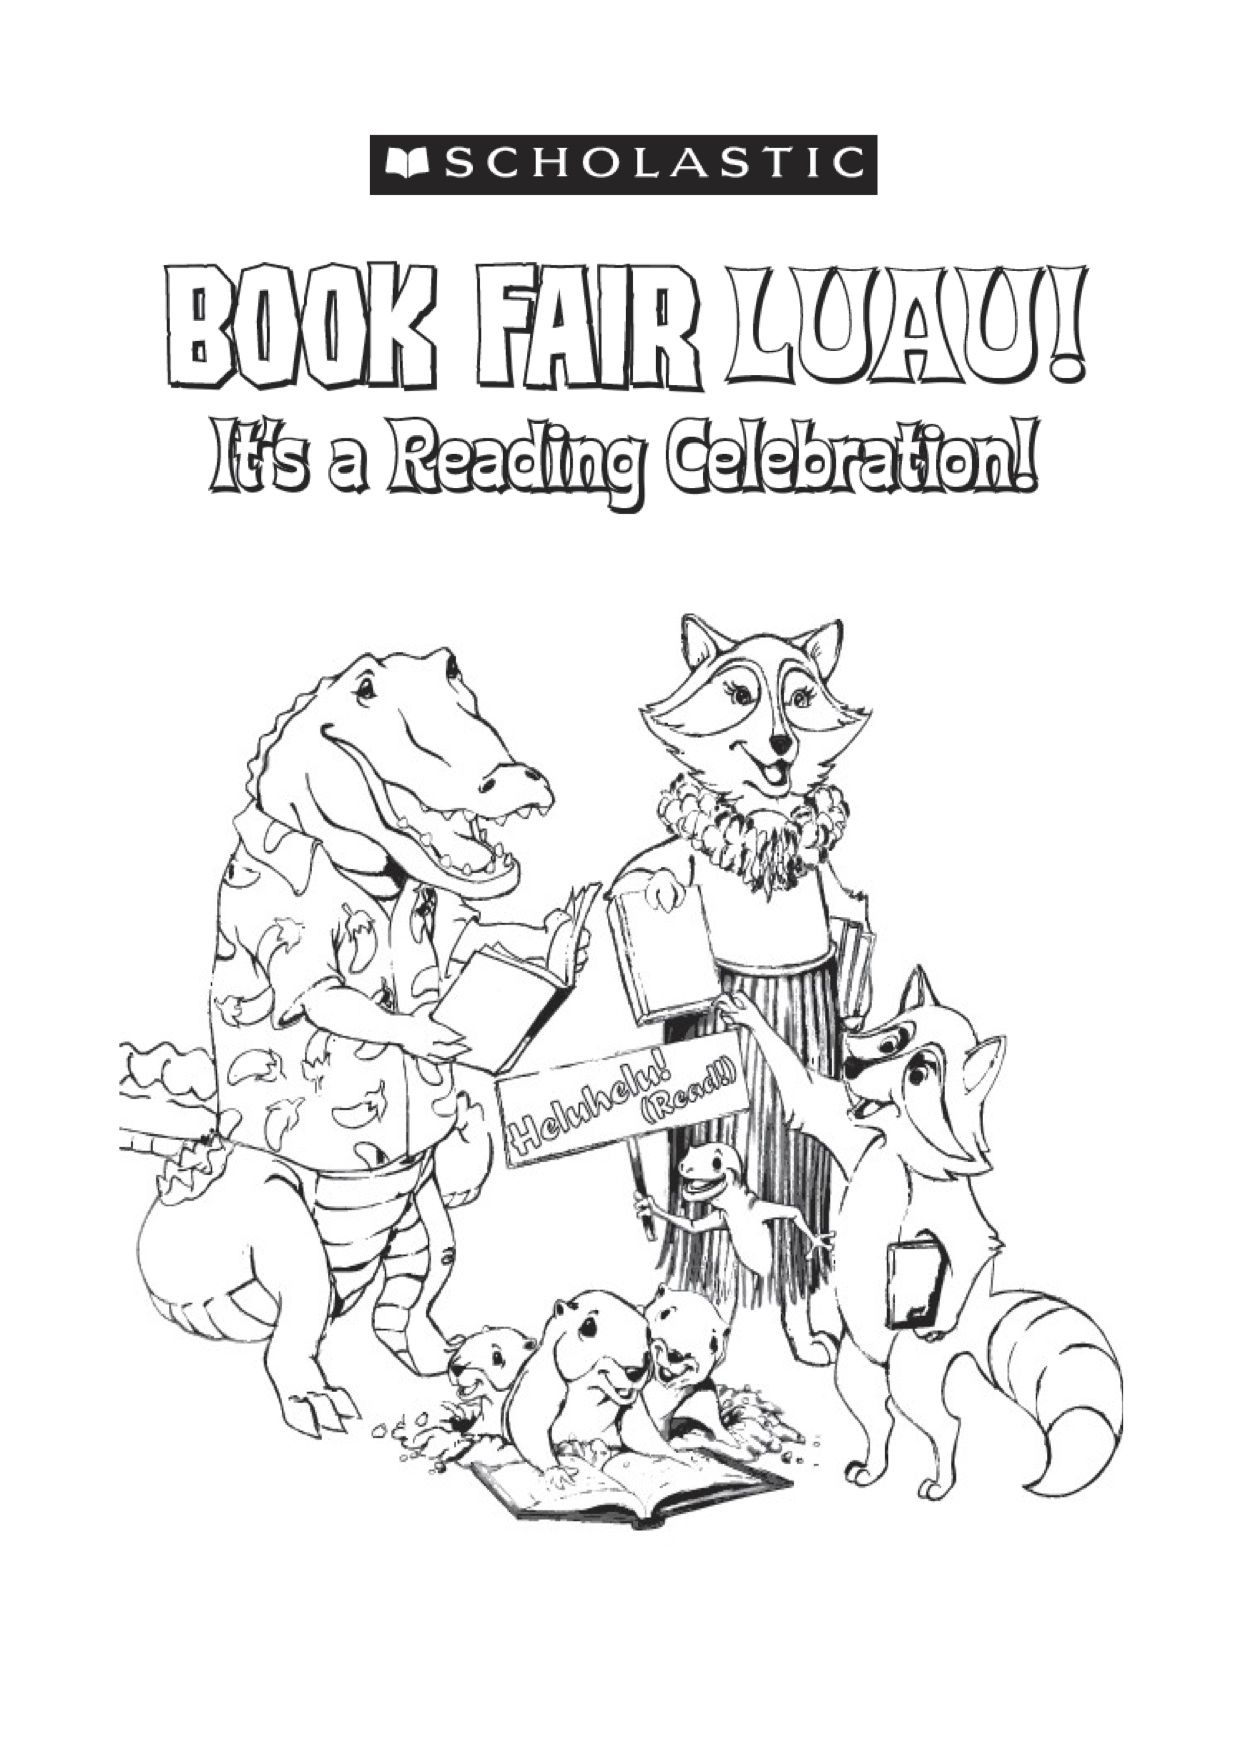 free country fair coloring pages | County Fair Coloring Pages For Kids - Coloring Home